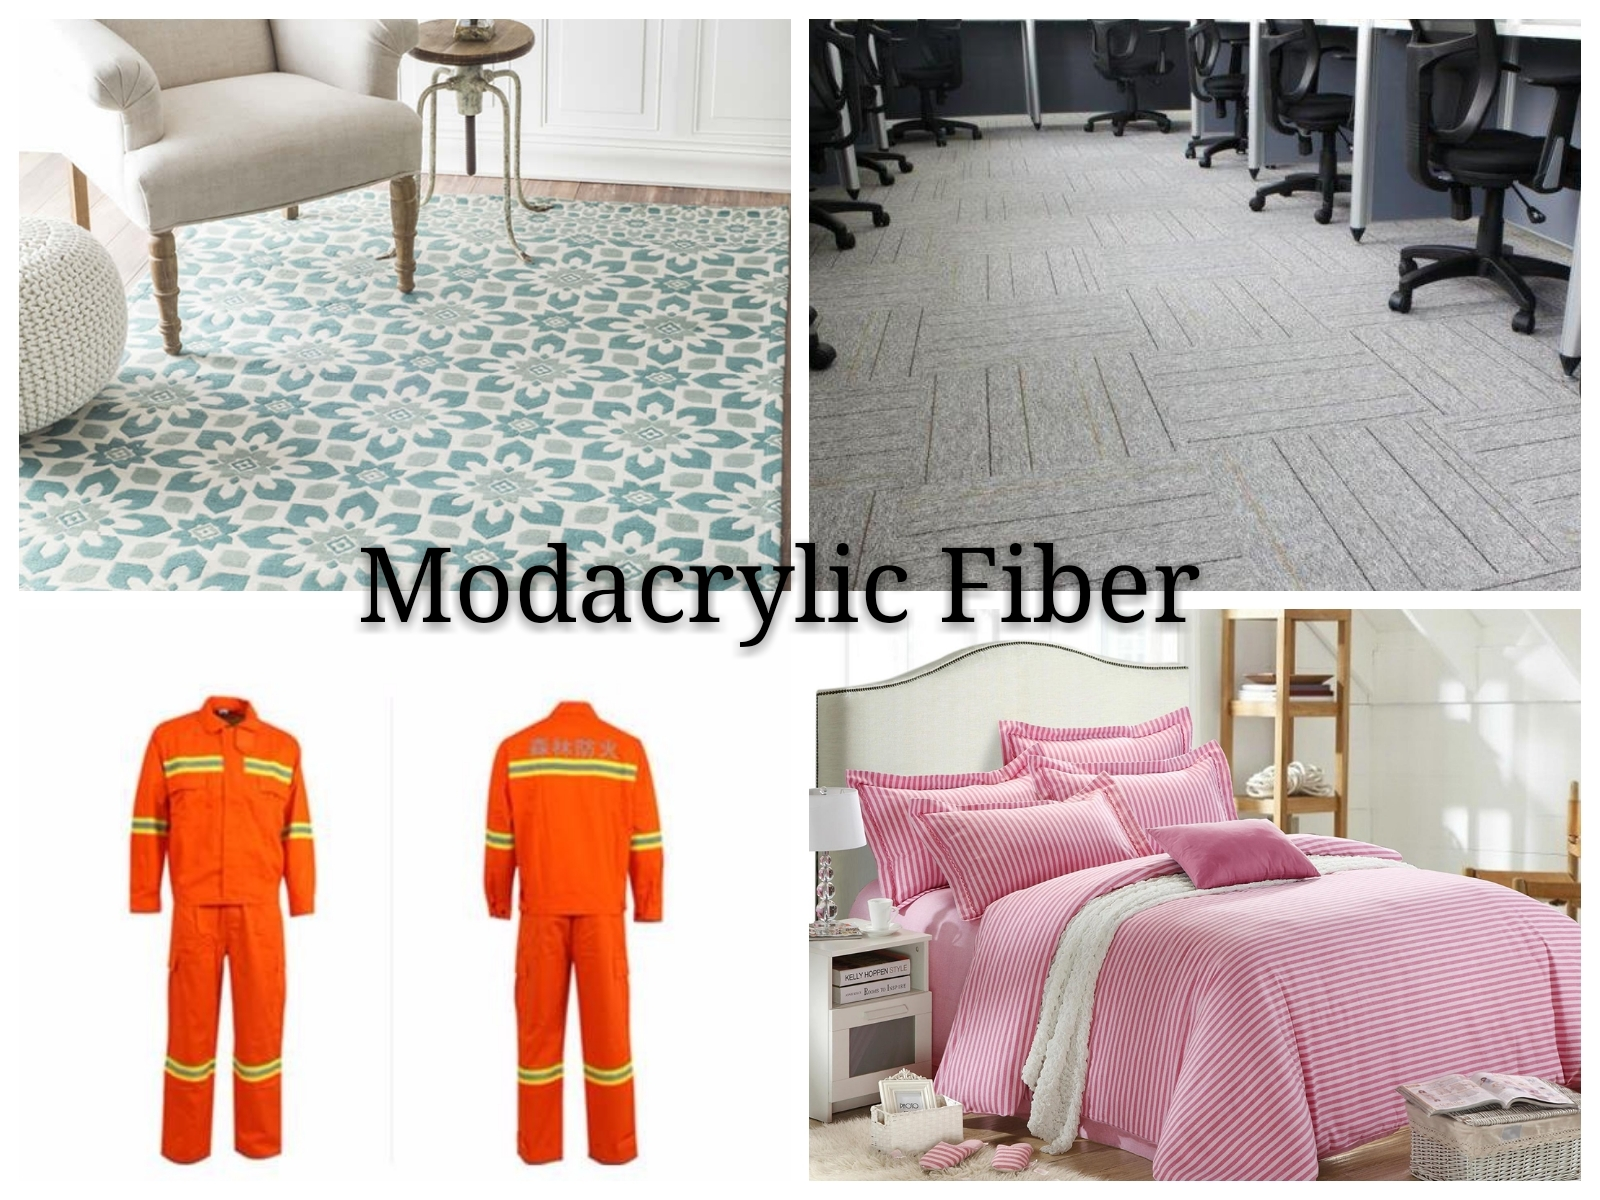 1.5D 2D 3D fr 100% modacrylic fiber fire proof fiber